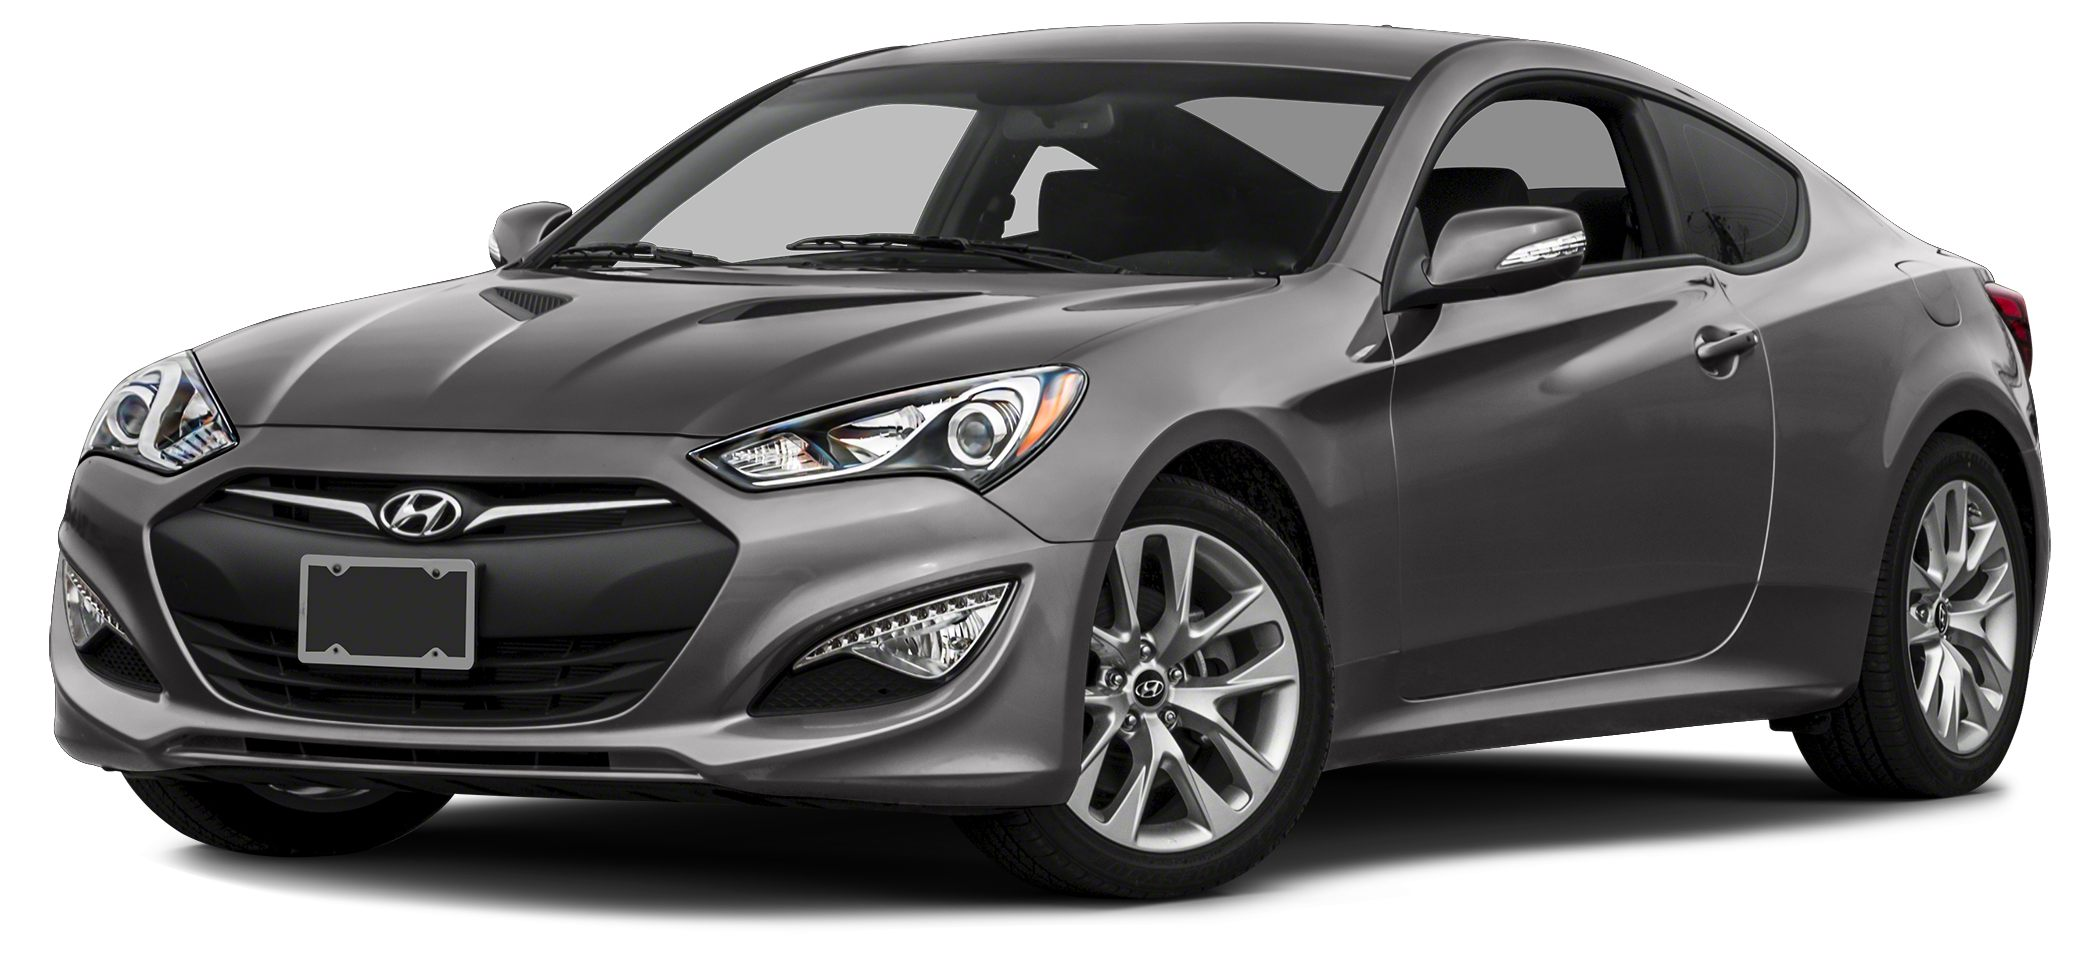 2016 Hyundai Genesis Coupe 38 Price applies to this vehicle only Must finance with dealer source